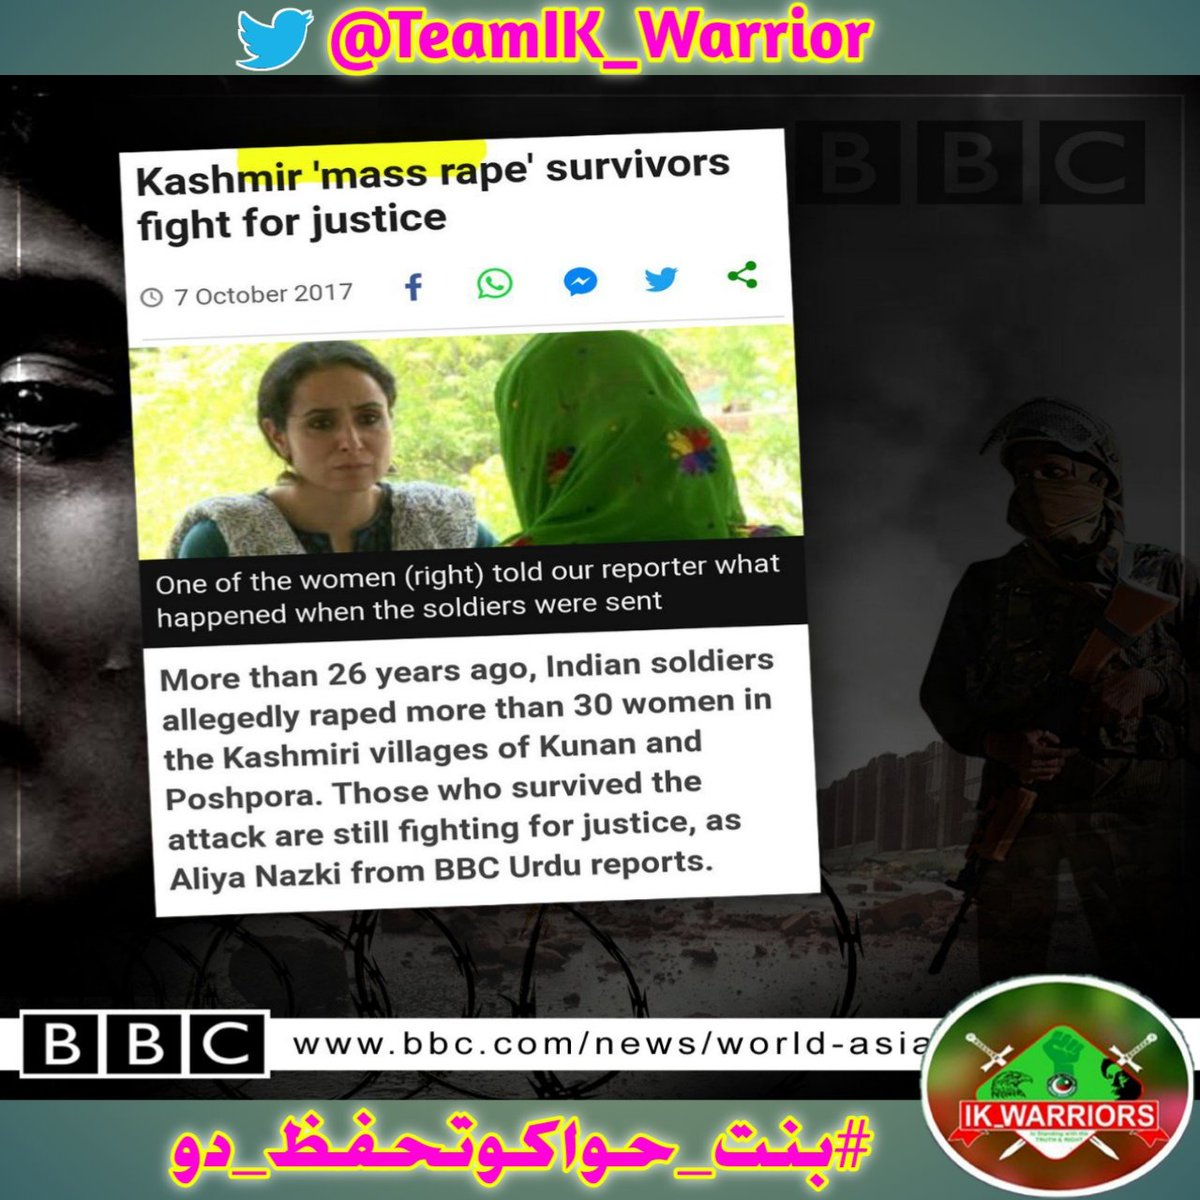 indian army shiwing its real raping face in kashmir. They have jst training of raps frm their homes and institutes  #بنت_حواکوتحفظ_دو